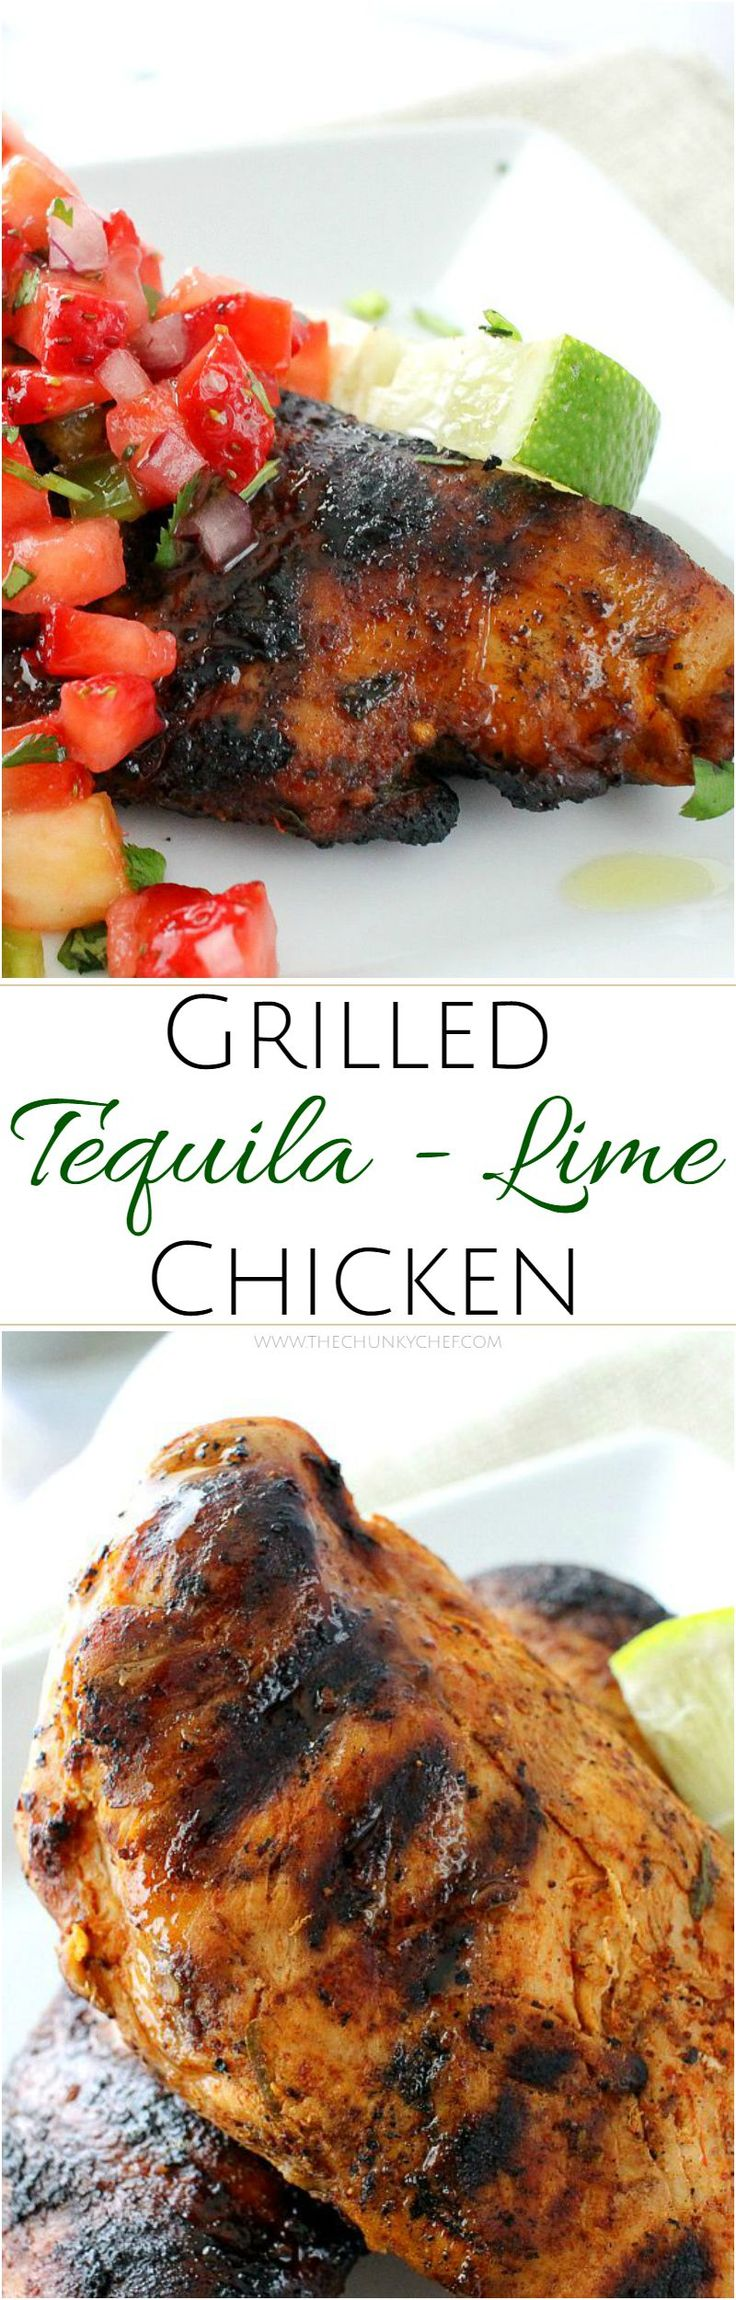 The Chunky Chef | Grilled Tequila Lime Chicken | A simple and easy marinade gives this tequila lime chicken an incredible flavor! Perfect on the grill, with a salsa, or in a taco/burrito bowl!